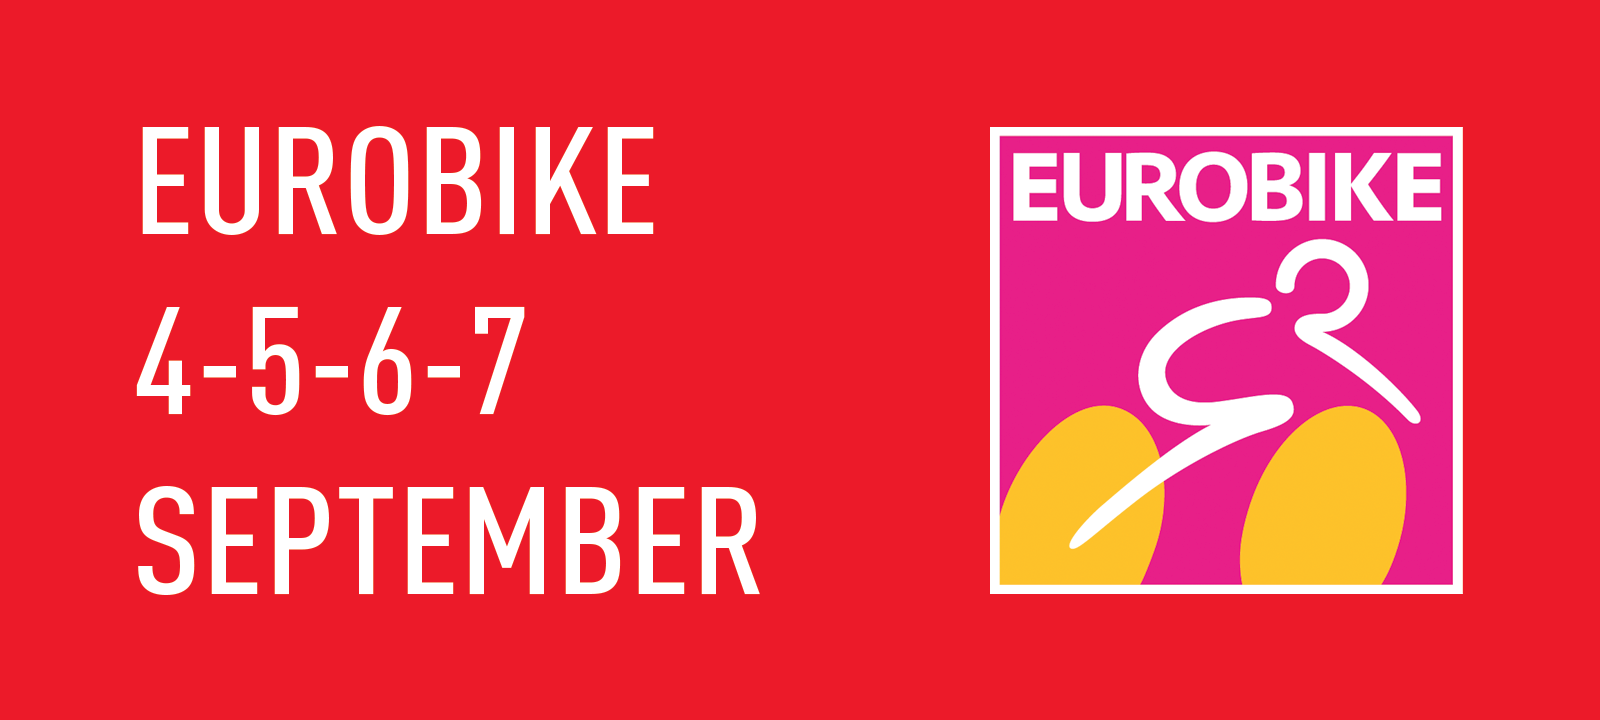 Elite unveils new products and innovations at Eurobike 2019